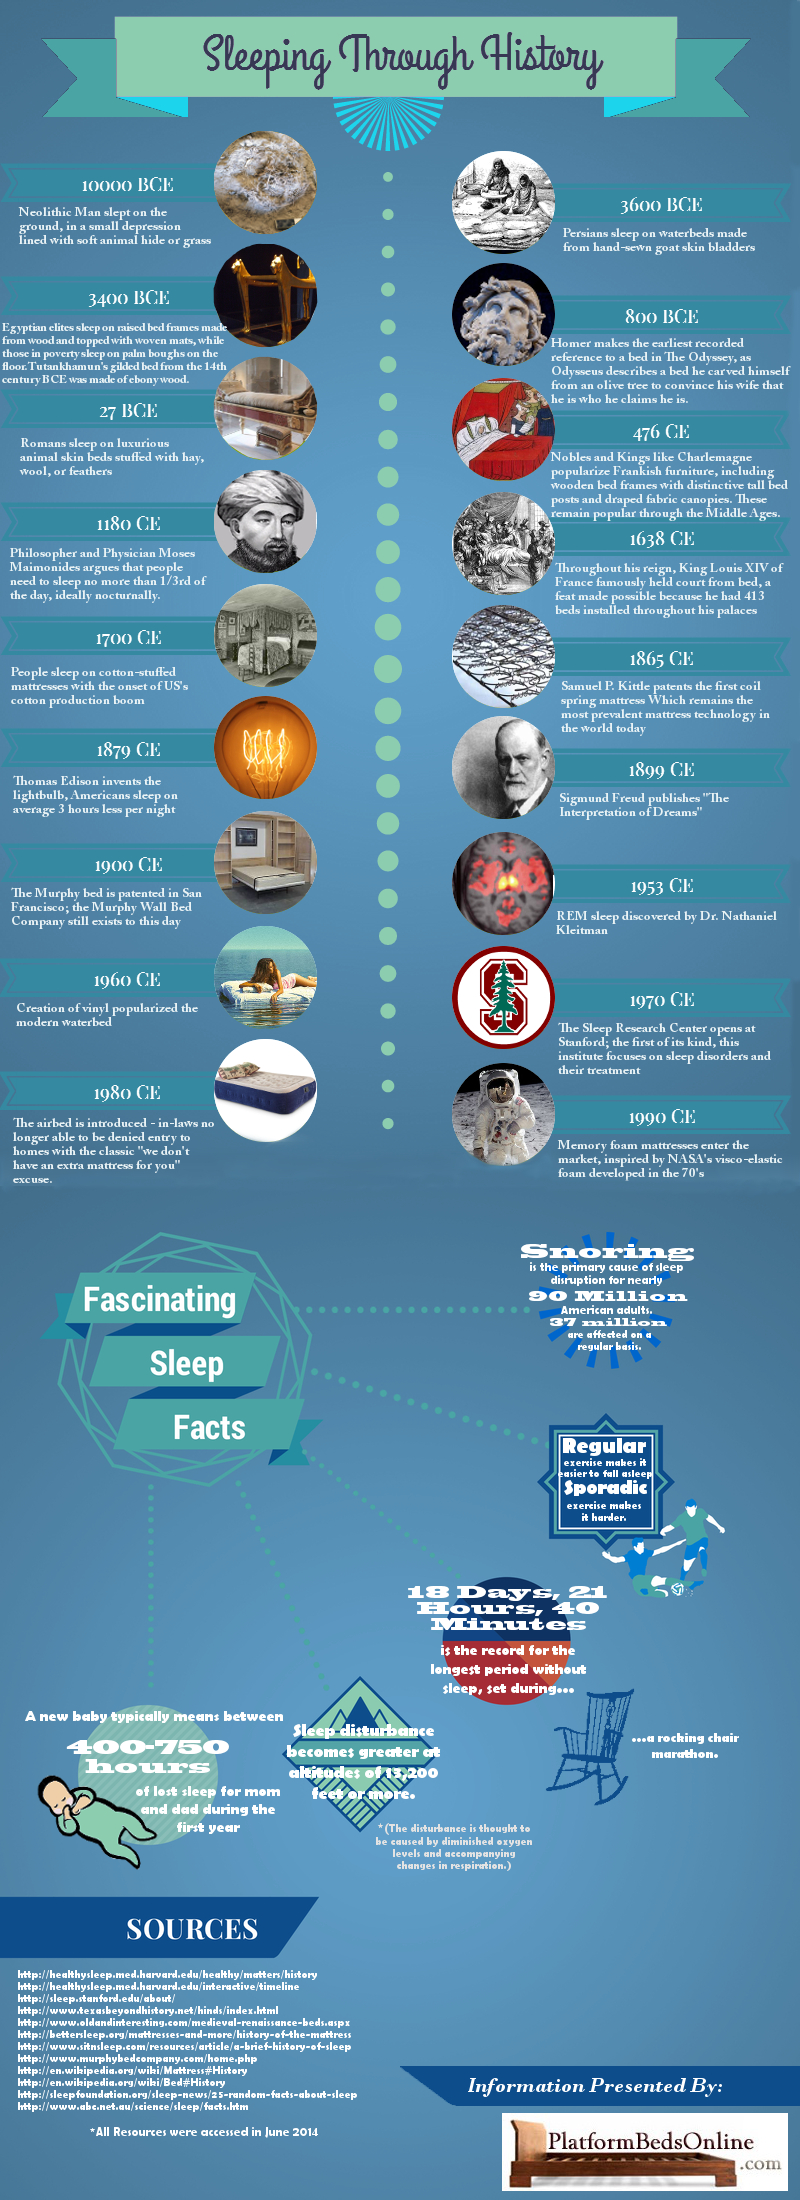 The history of sleep, an infographic from Platform Beds Online